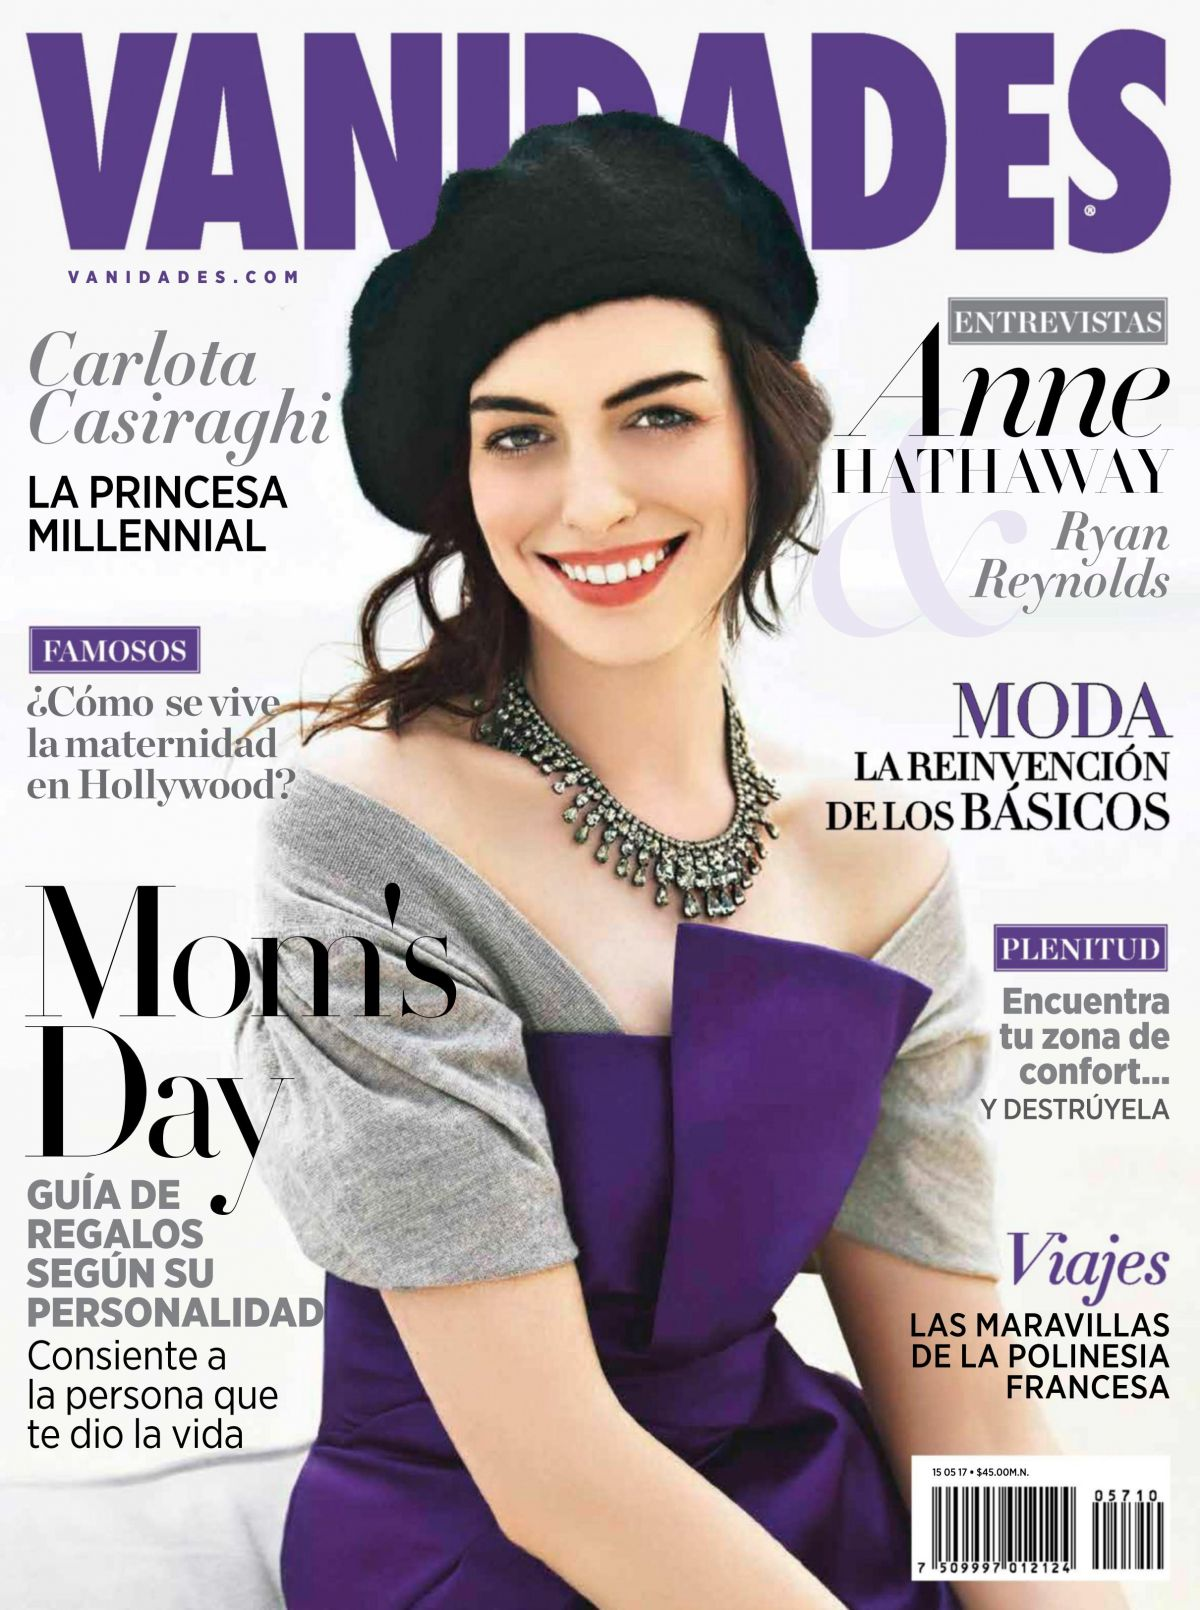 ANNE HATHAWAY in Vanidades Magazine, Mexico May 2017 Issue